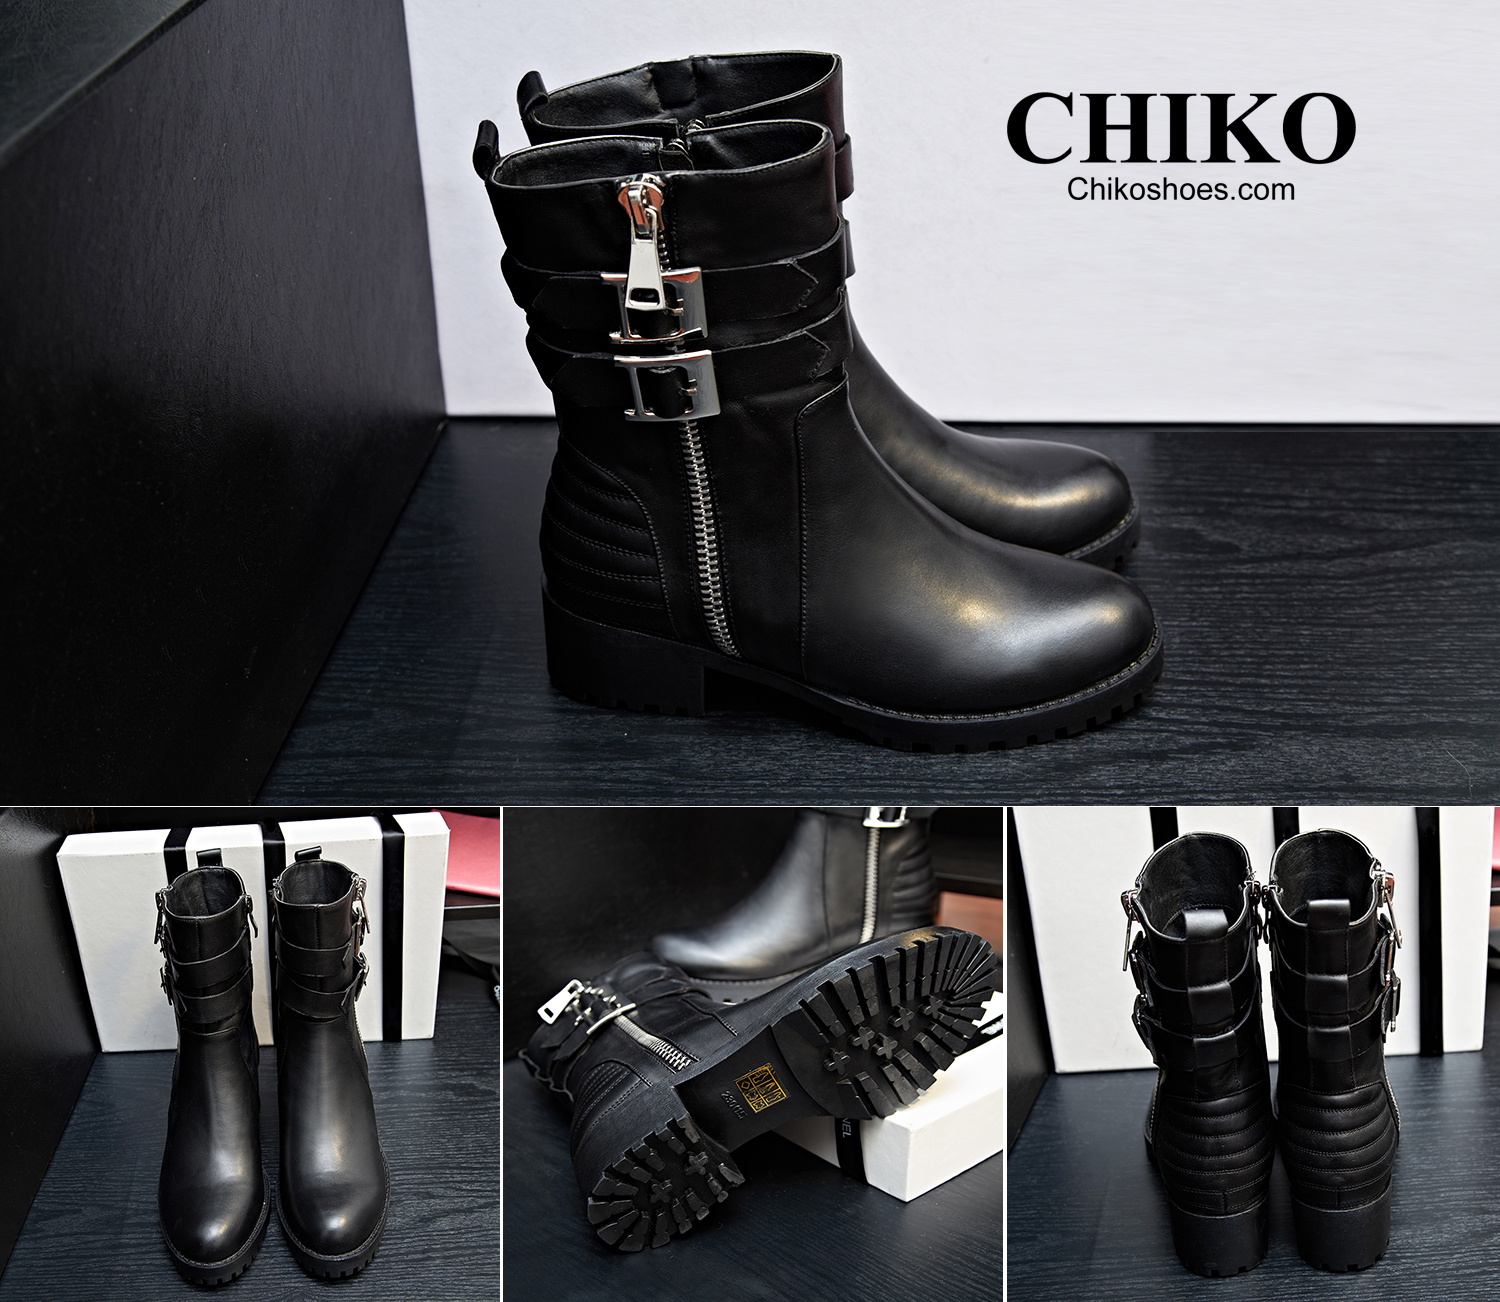 chiko-3986-biker-boots-celebrity-ruby-rose